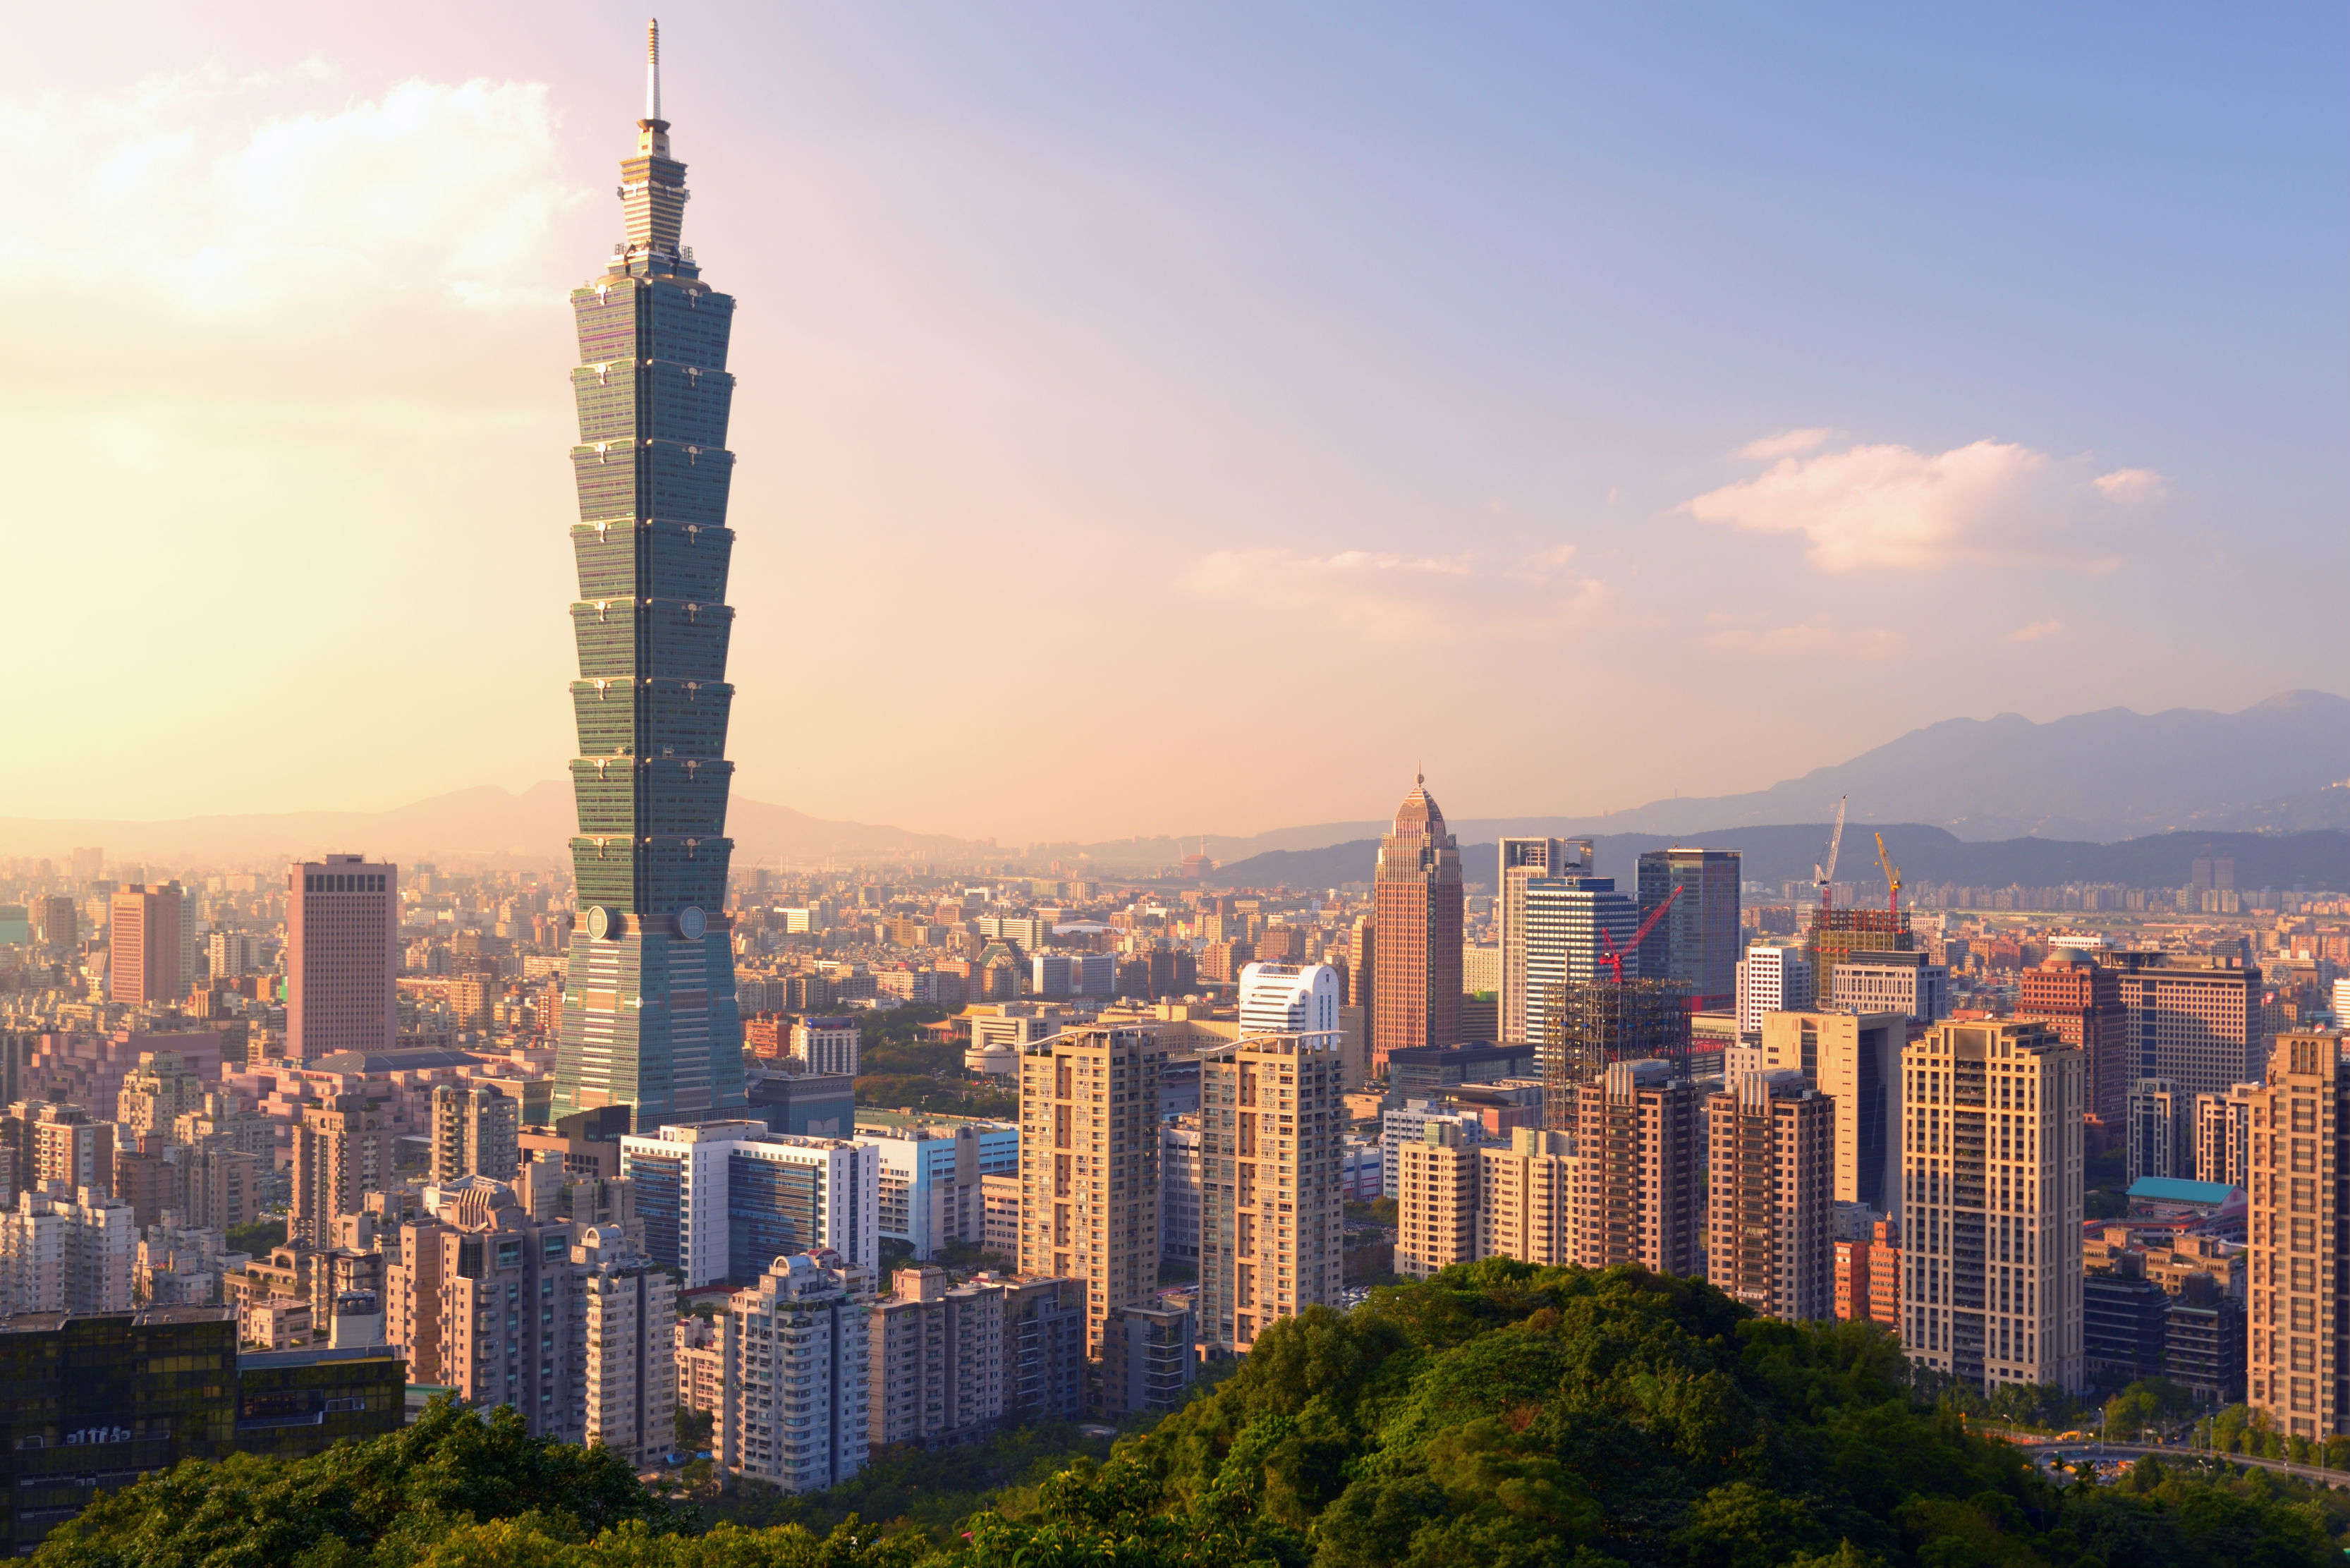 Spending a day in Taiwan's capital city, Taipei